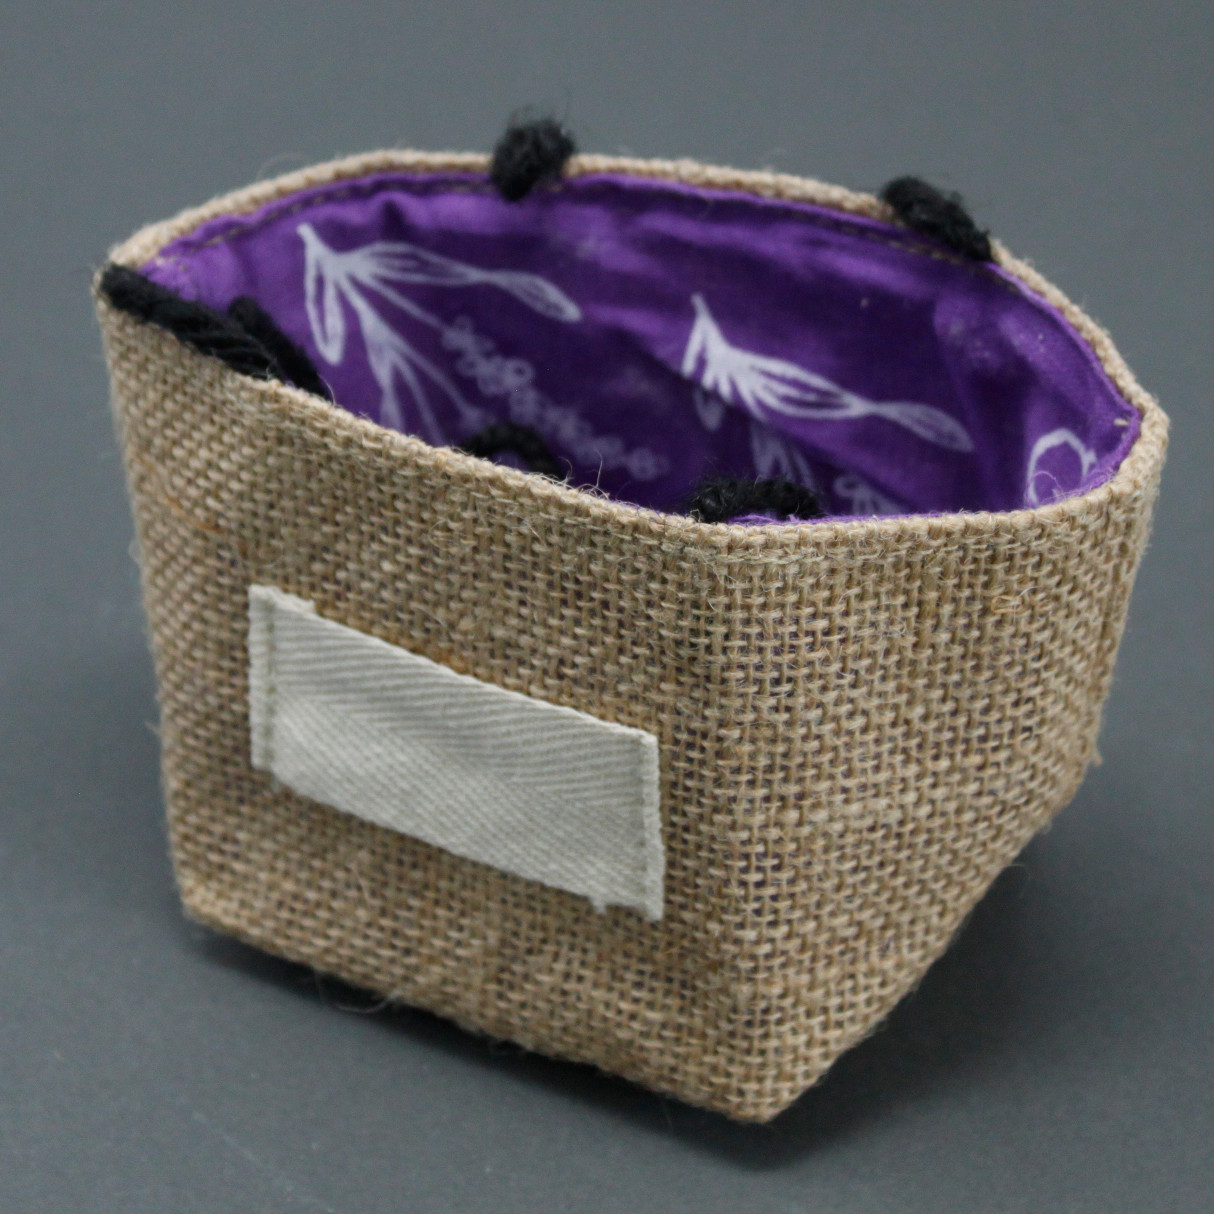 Natural Jute Cotton Gift Bag Lavender Lining Small